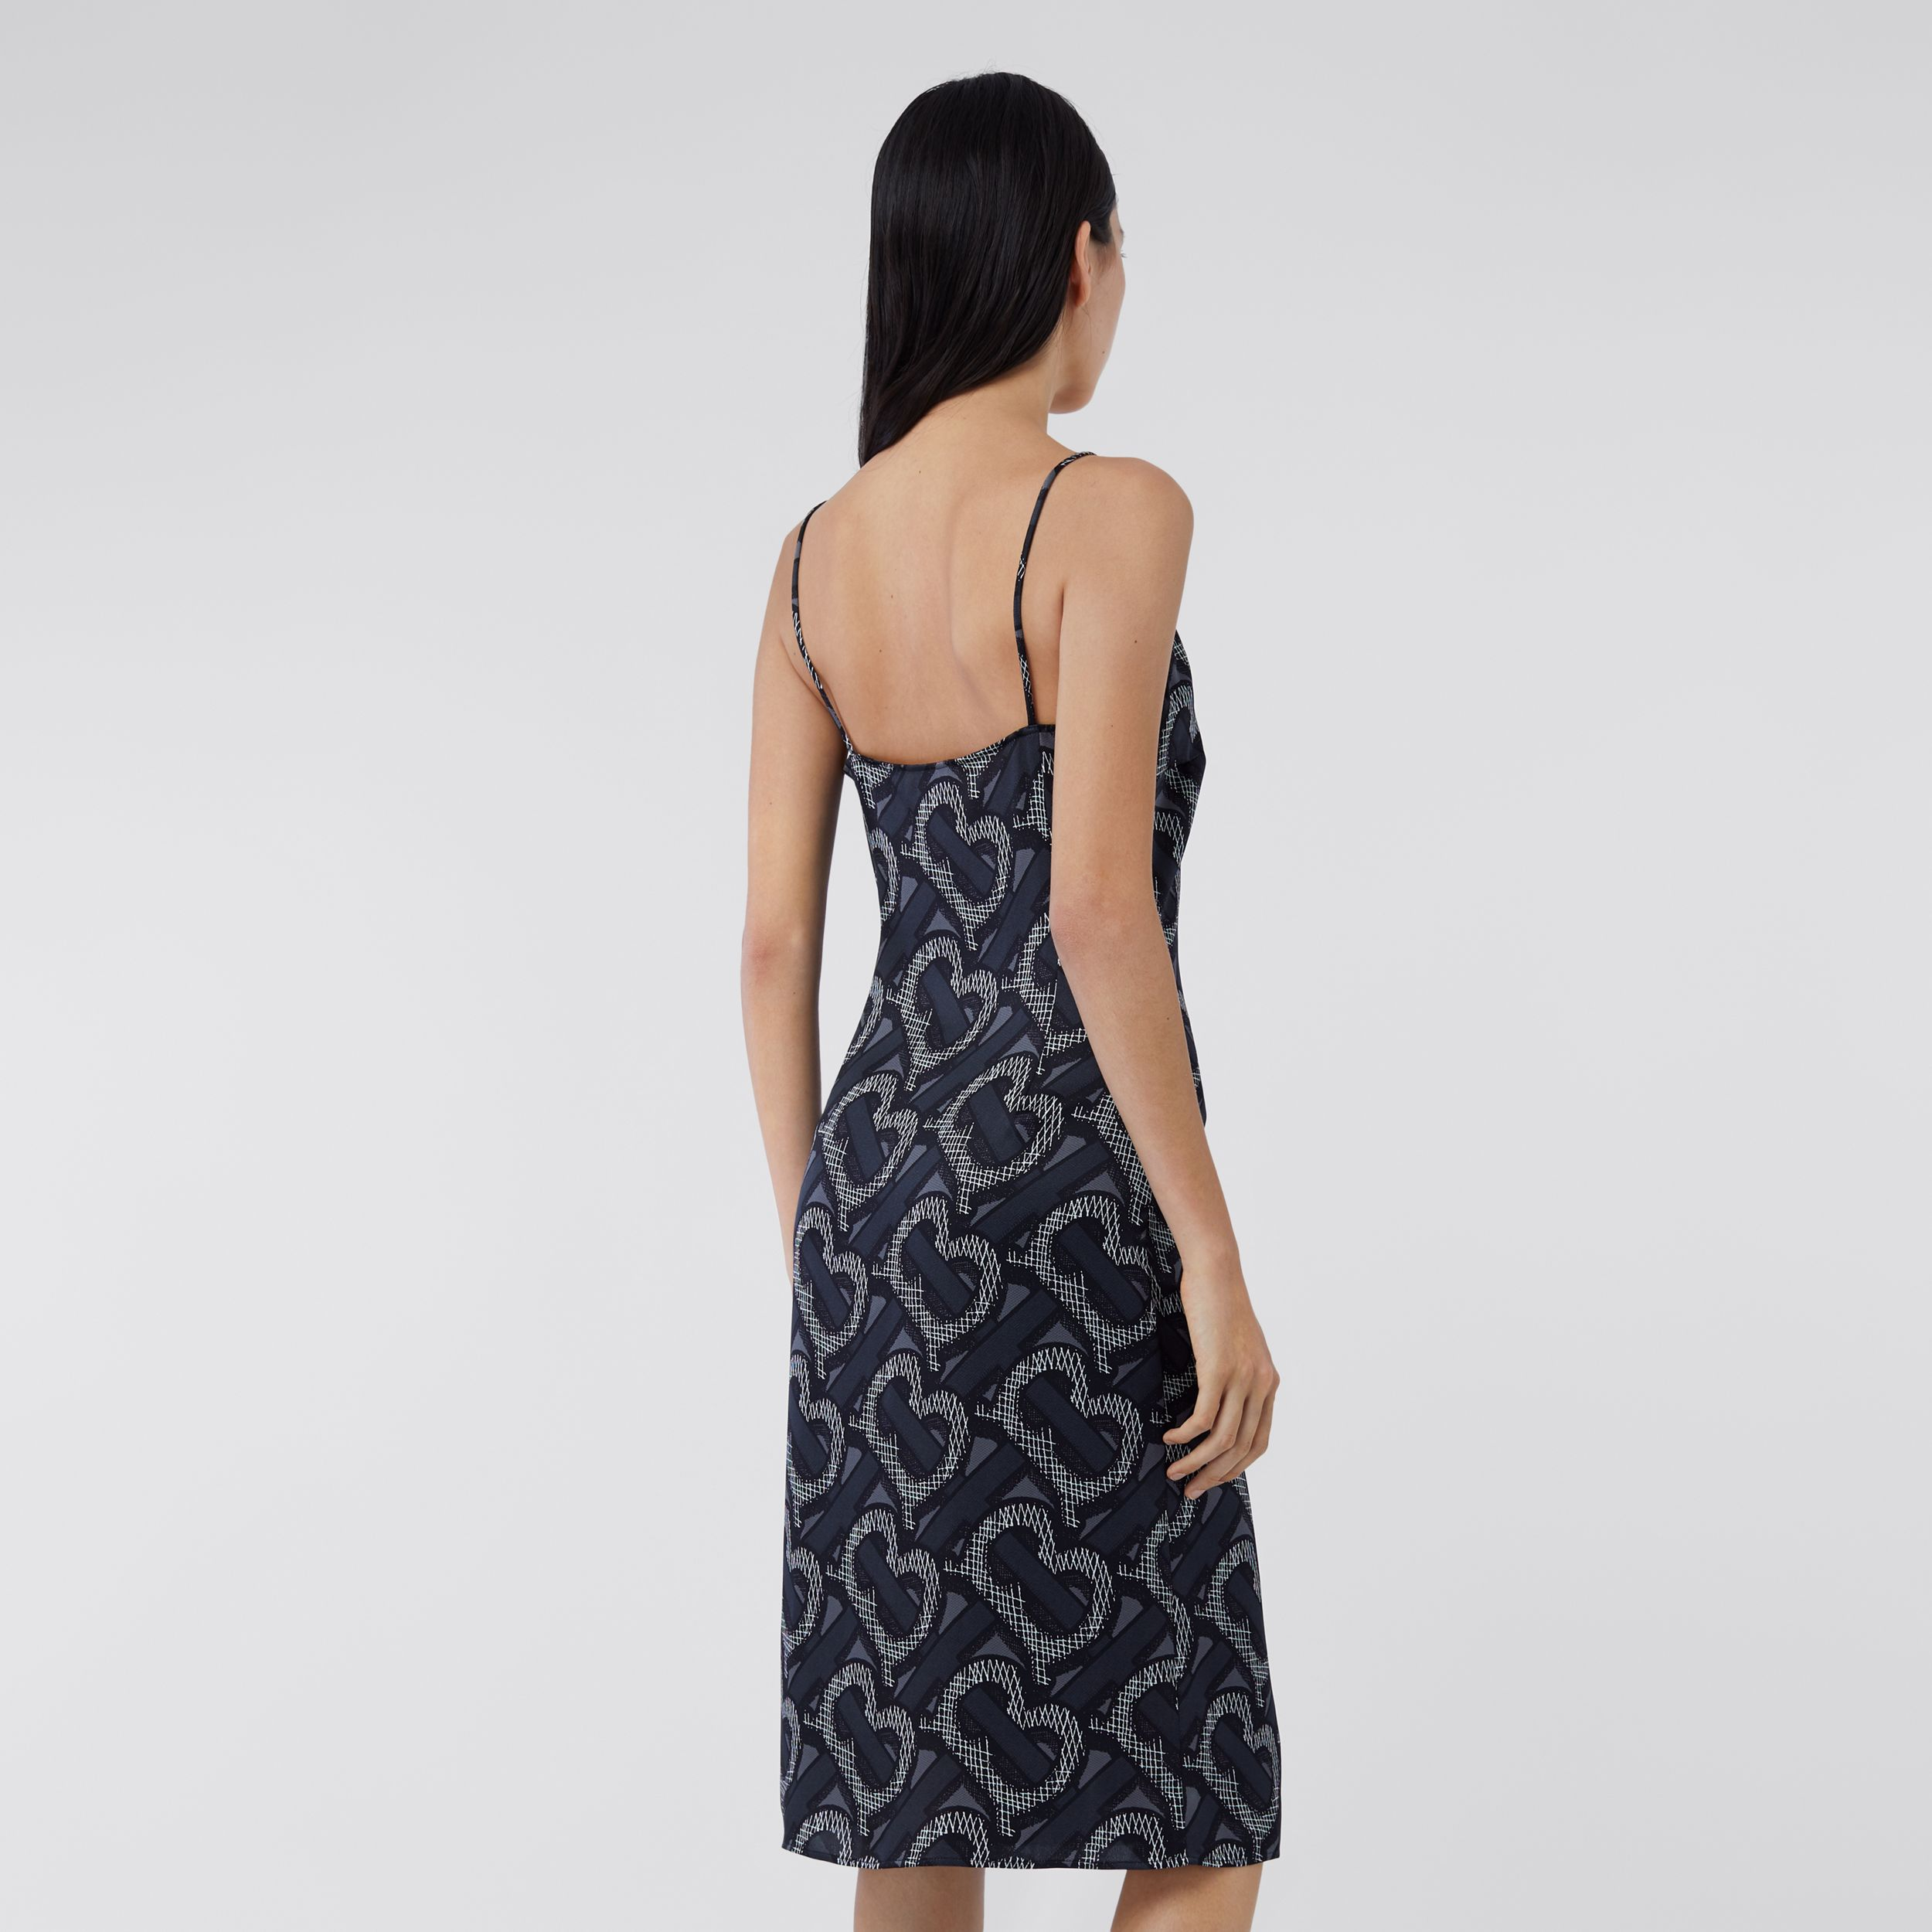 Monogram Print Silk Satin Slip Dress in Graphite - Women | Burberry Canada - 3